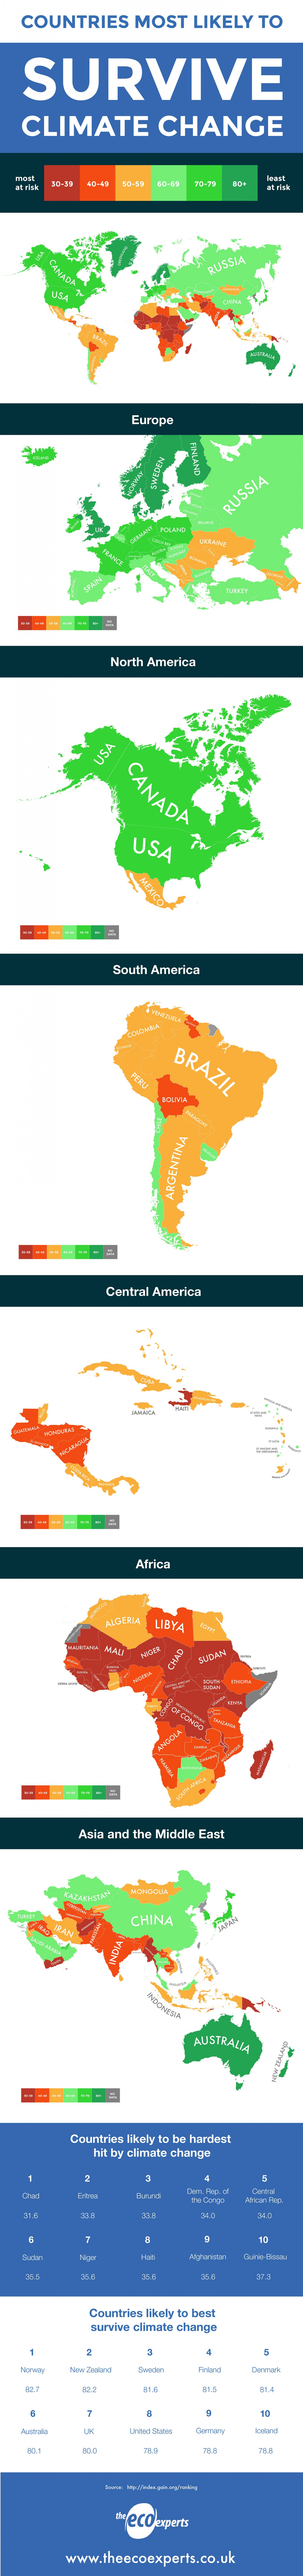 Countries Most Likely To Survive Climate Change Infographic